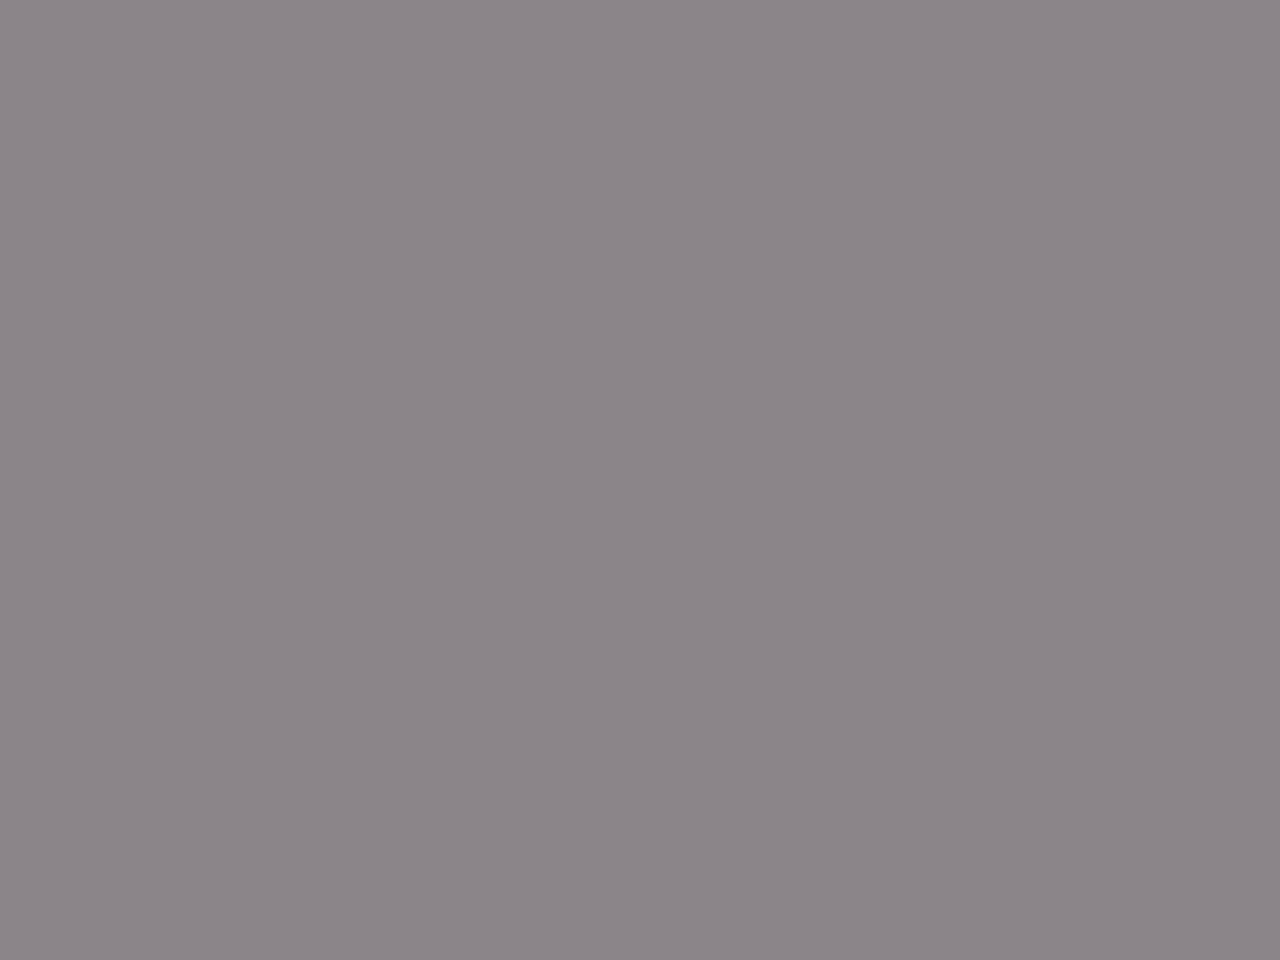 1280x960 Taupe Gray Solid Color Background